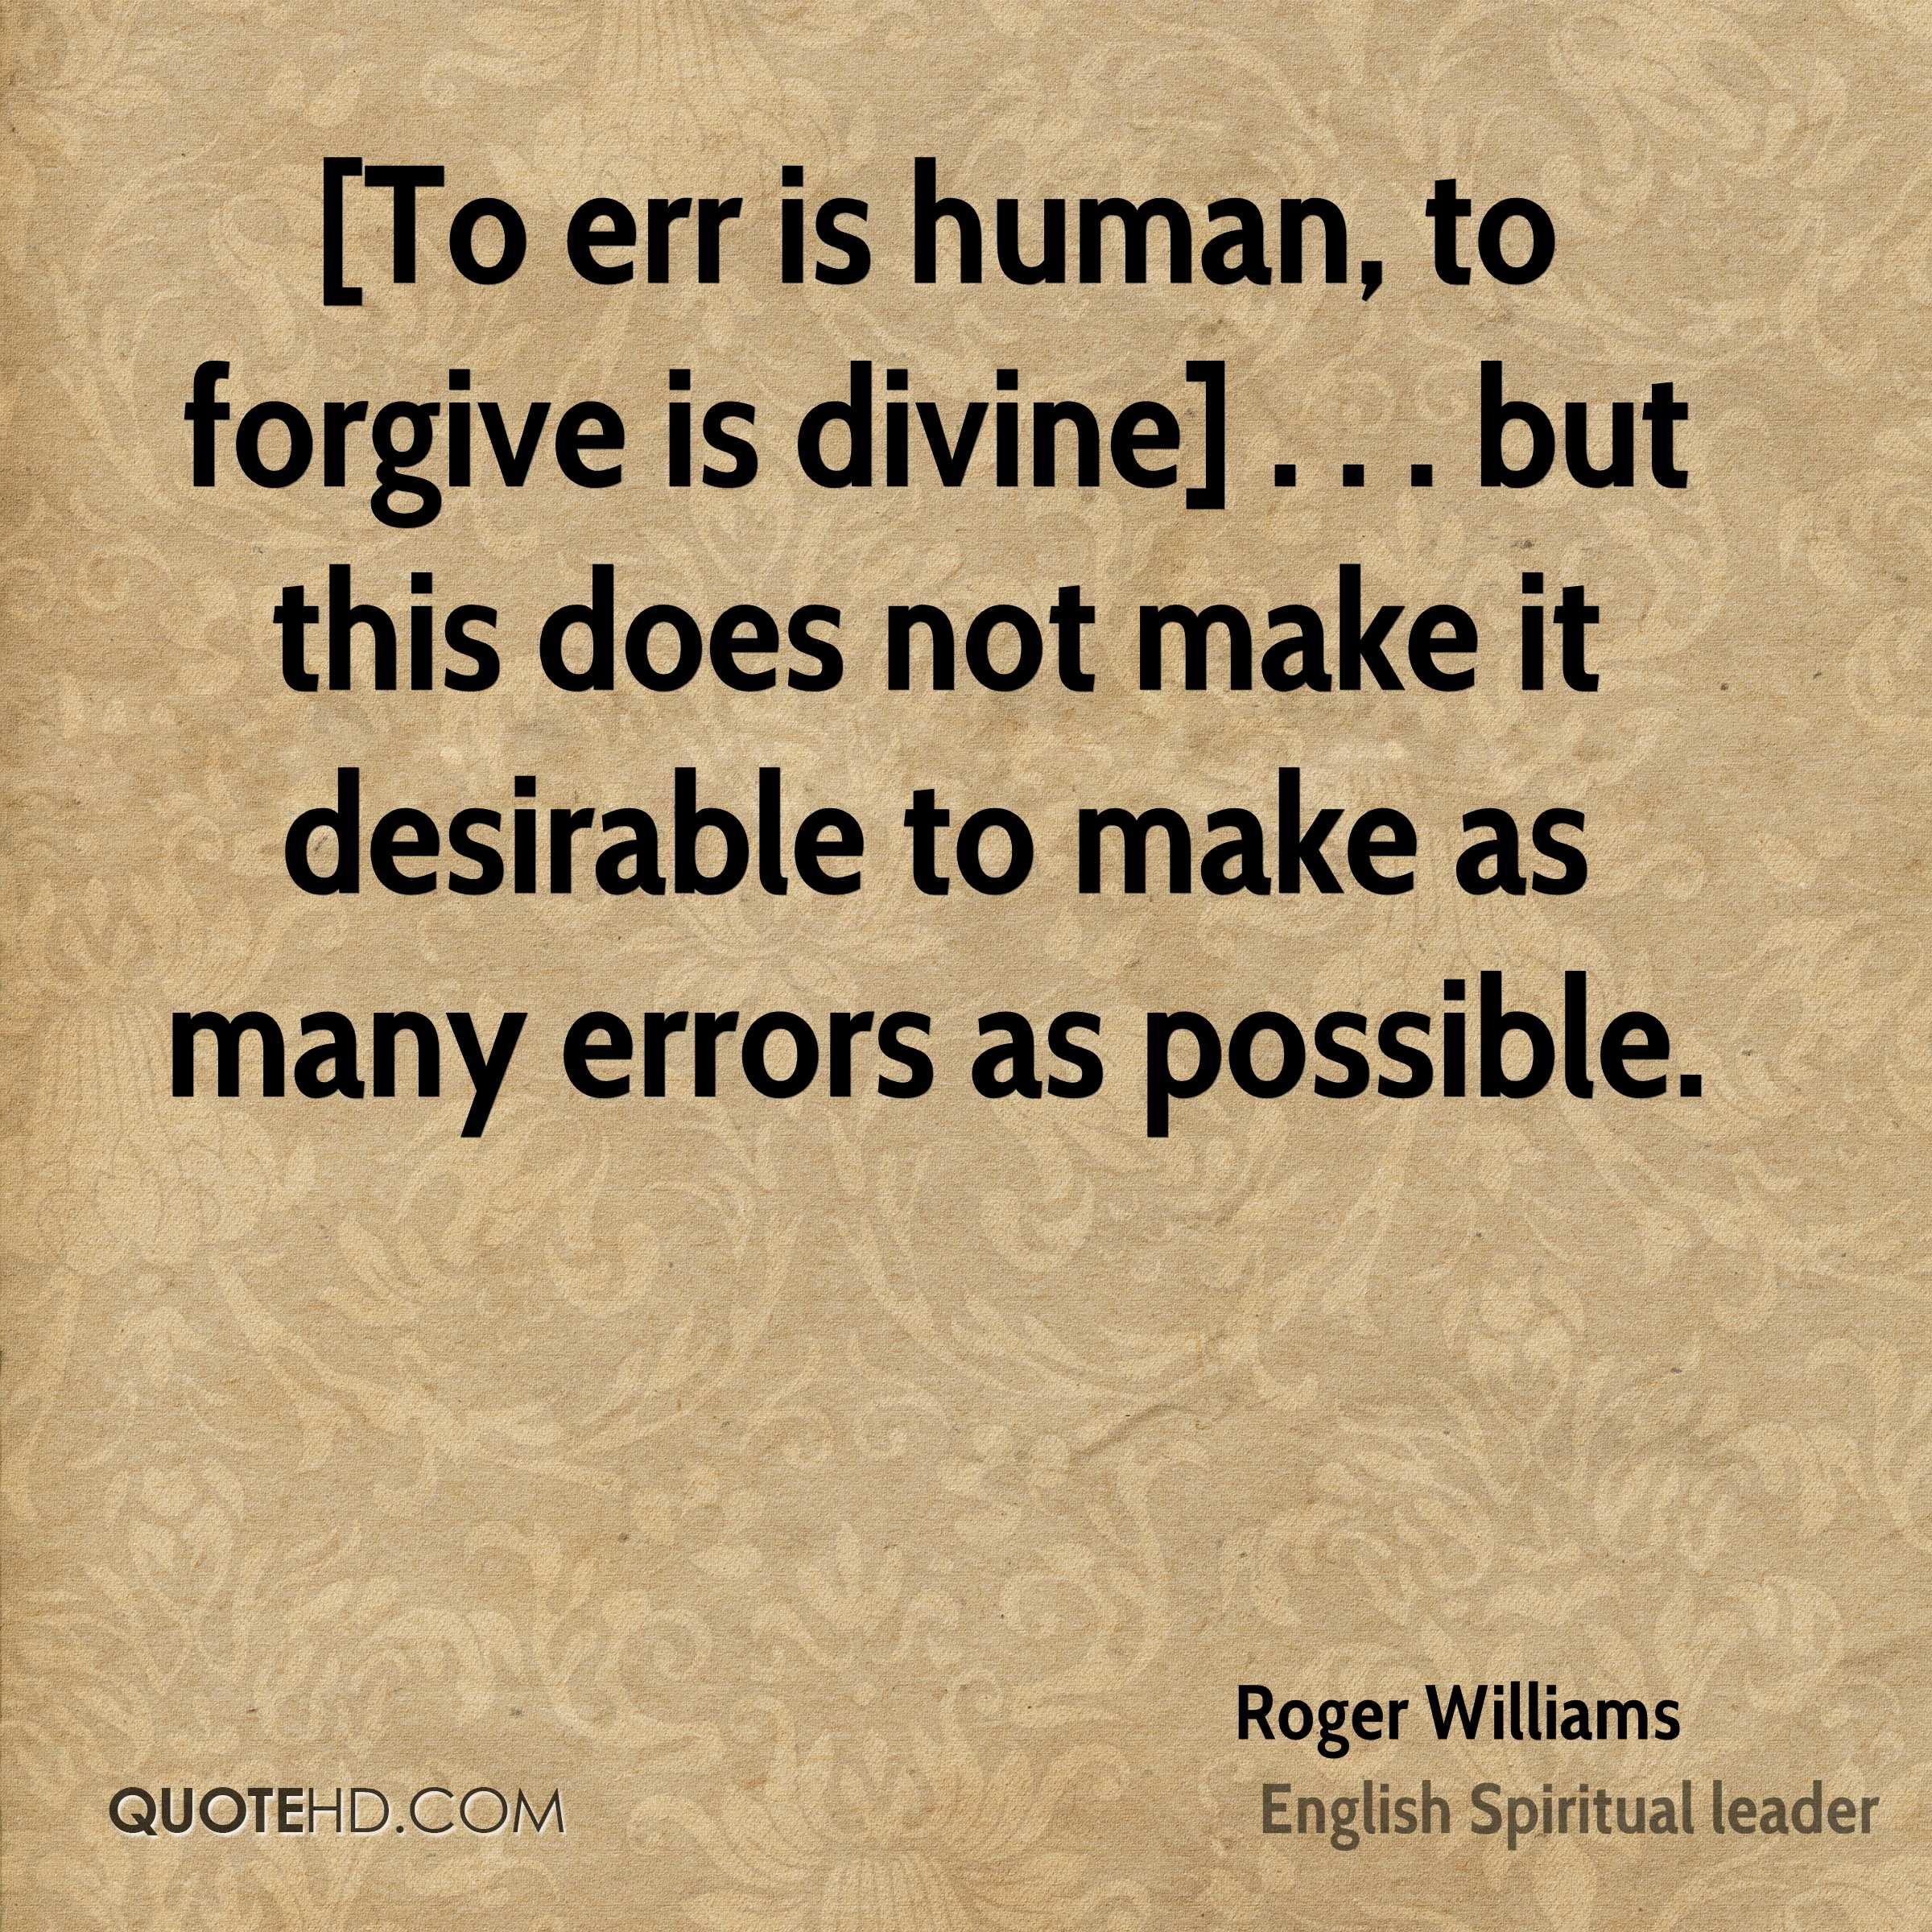 Forgiveness Is Divine Quote: Best 18 To Err Is Human Quote